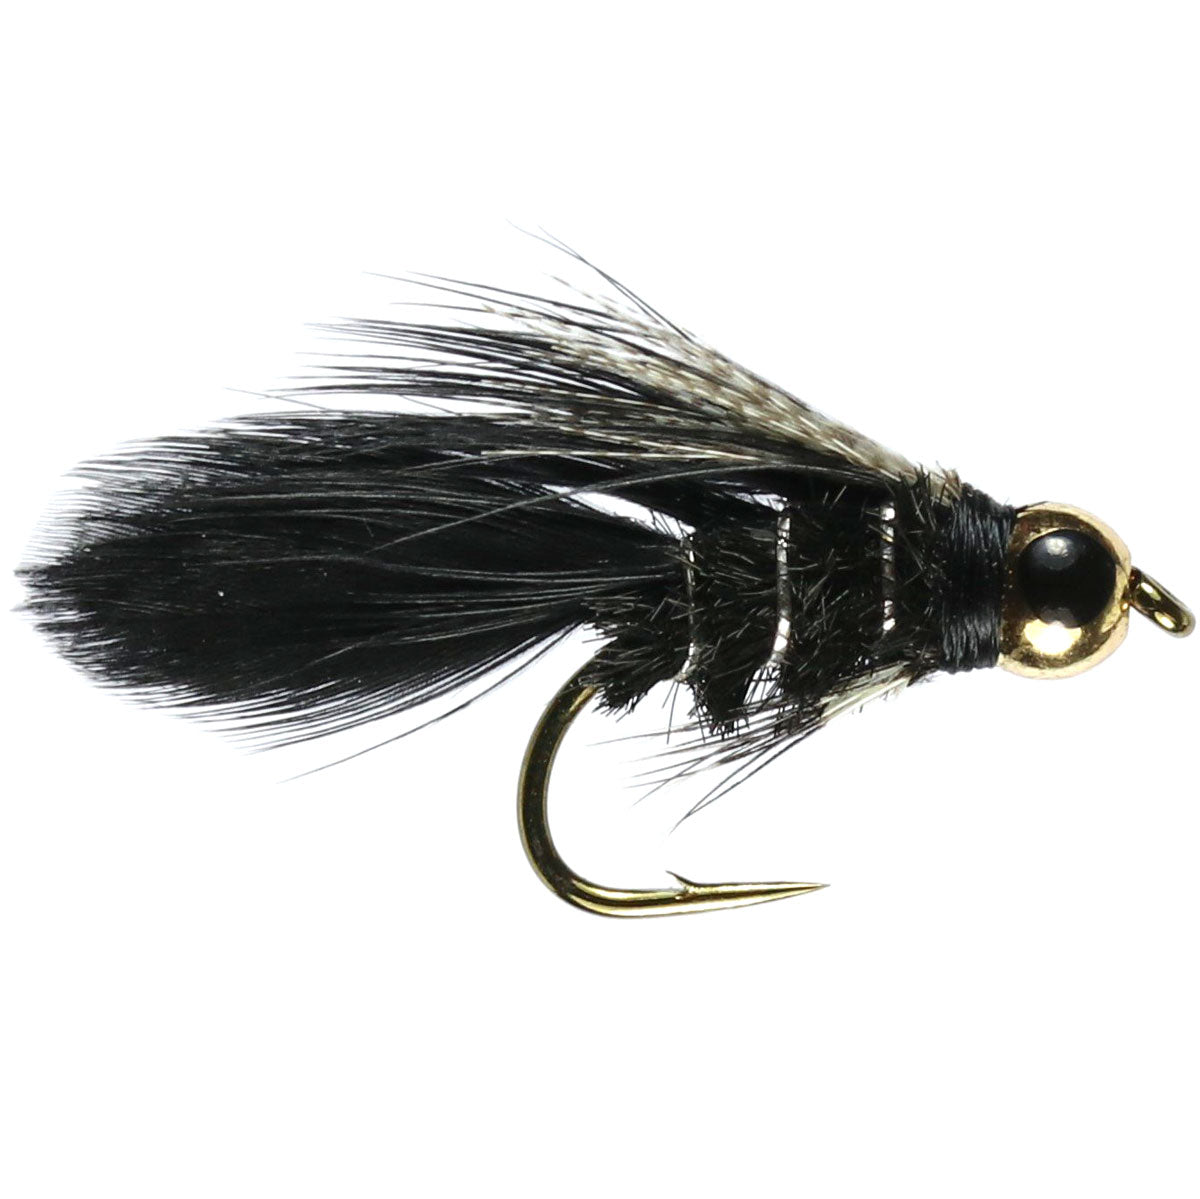 G/B Ace of Spades Lure (Size 10)